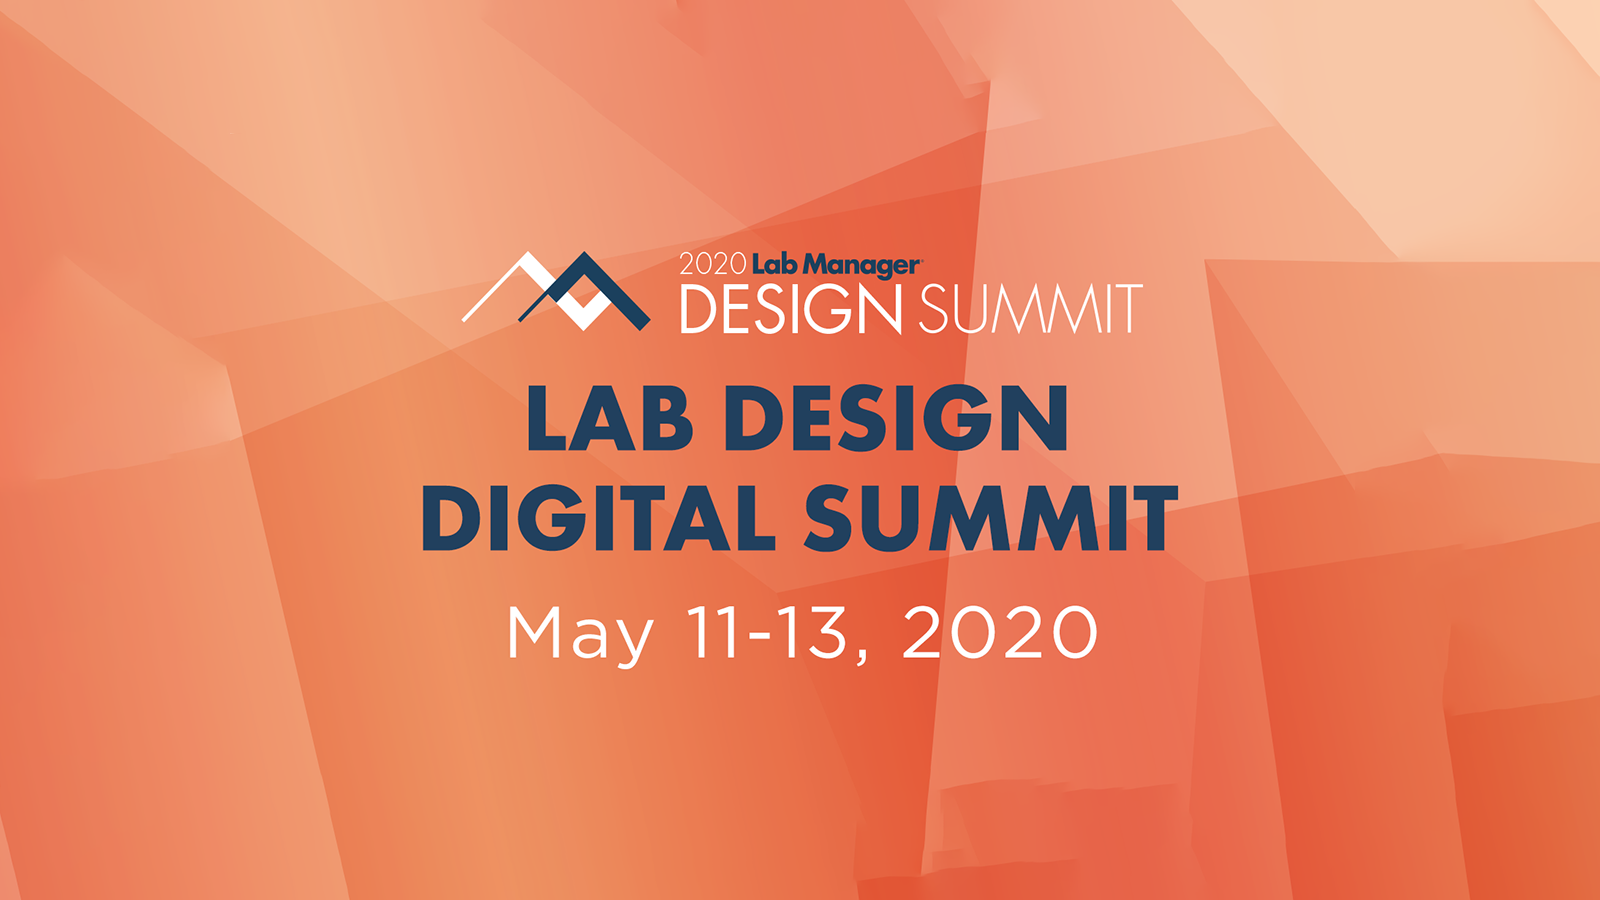 Register Now for the Lab Design Digital Summit